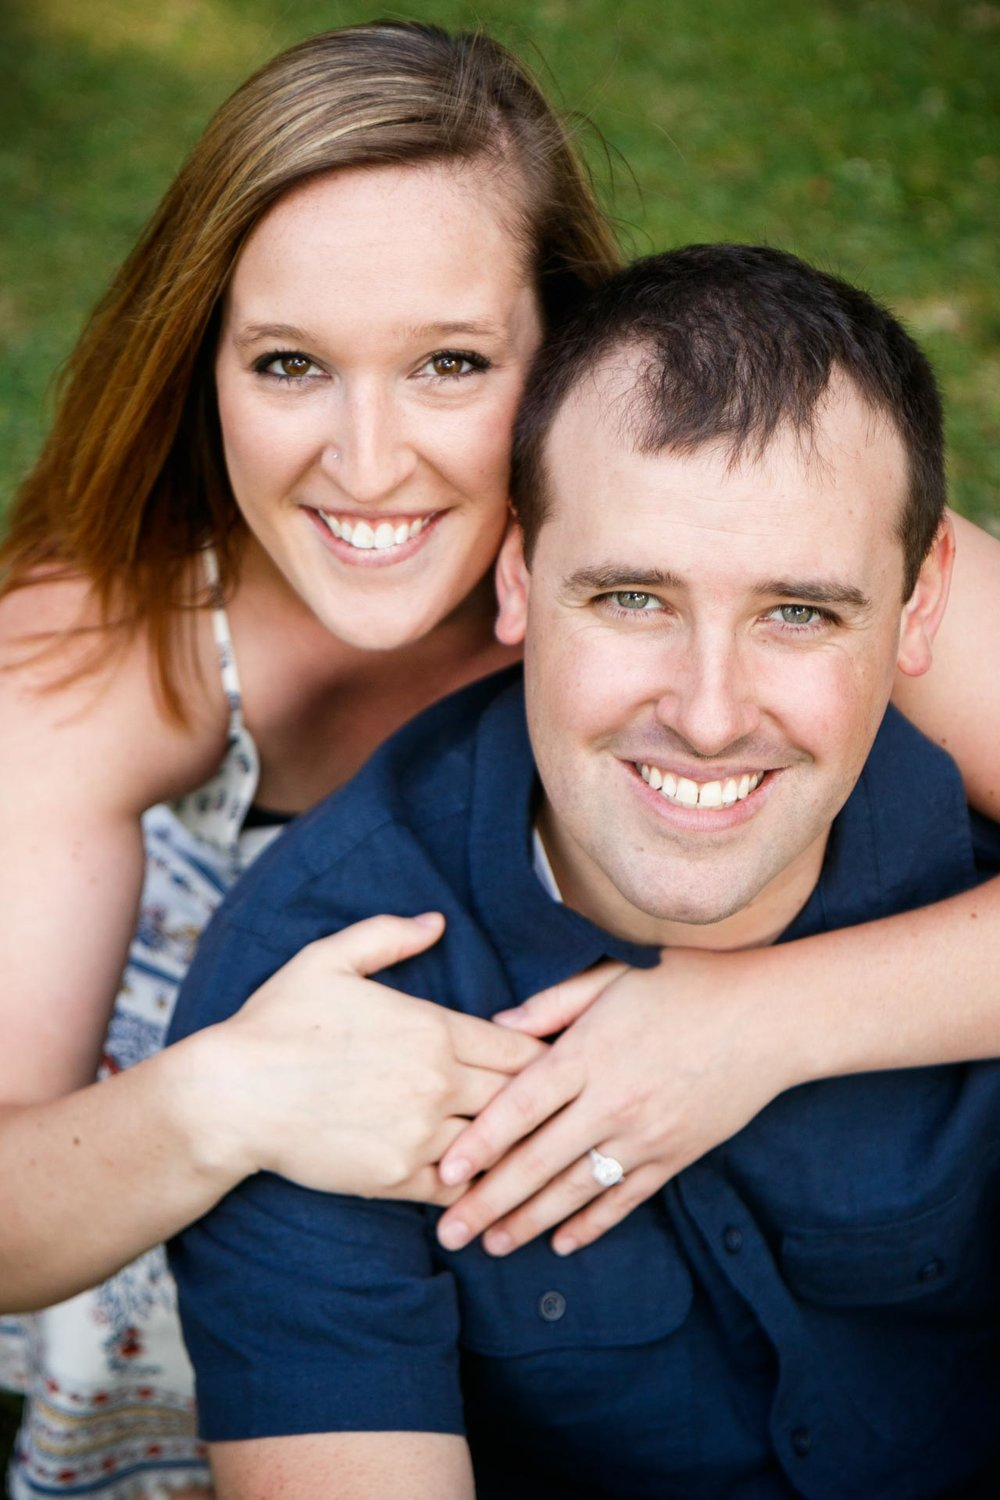 engagement-photos-riverside-park-neenah-adam-shea-photography-green-bay-appleton-neenah-photographer-5.jpg